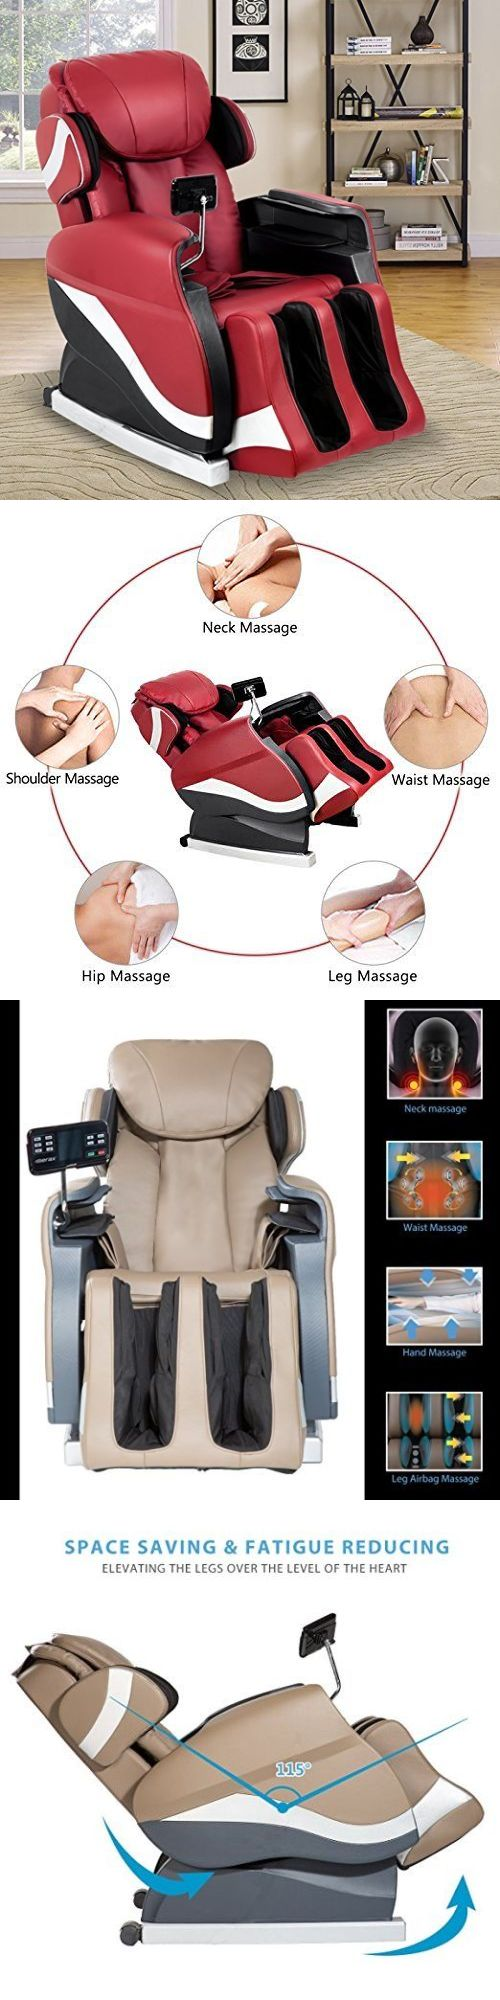 Electric Massage Chairs: Merax Massage Chair Recliner Chair With Air Massage System Shiatsu Massage Chair -> BUY IT NOW ONLY: $619.99 on eBay!